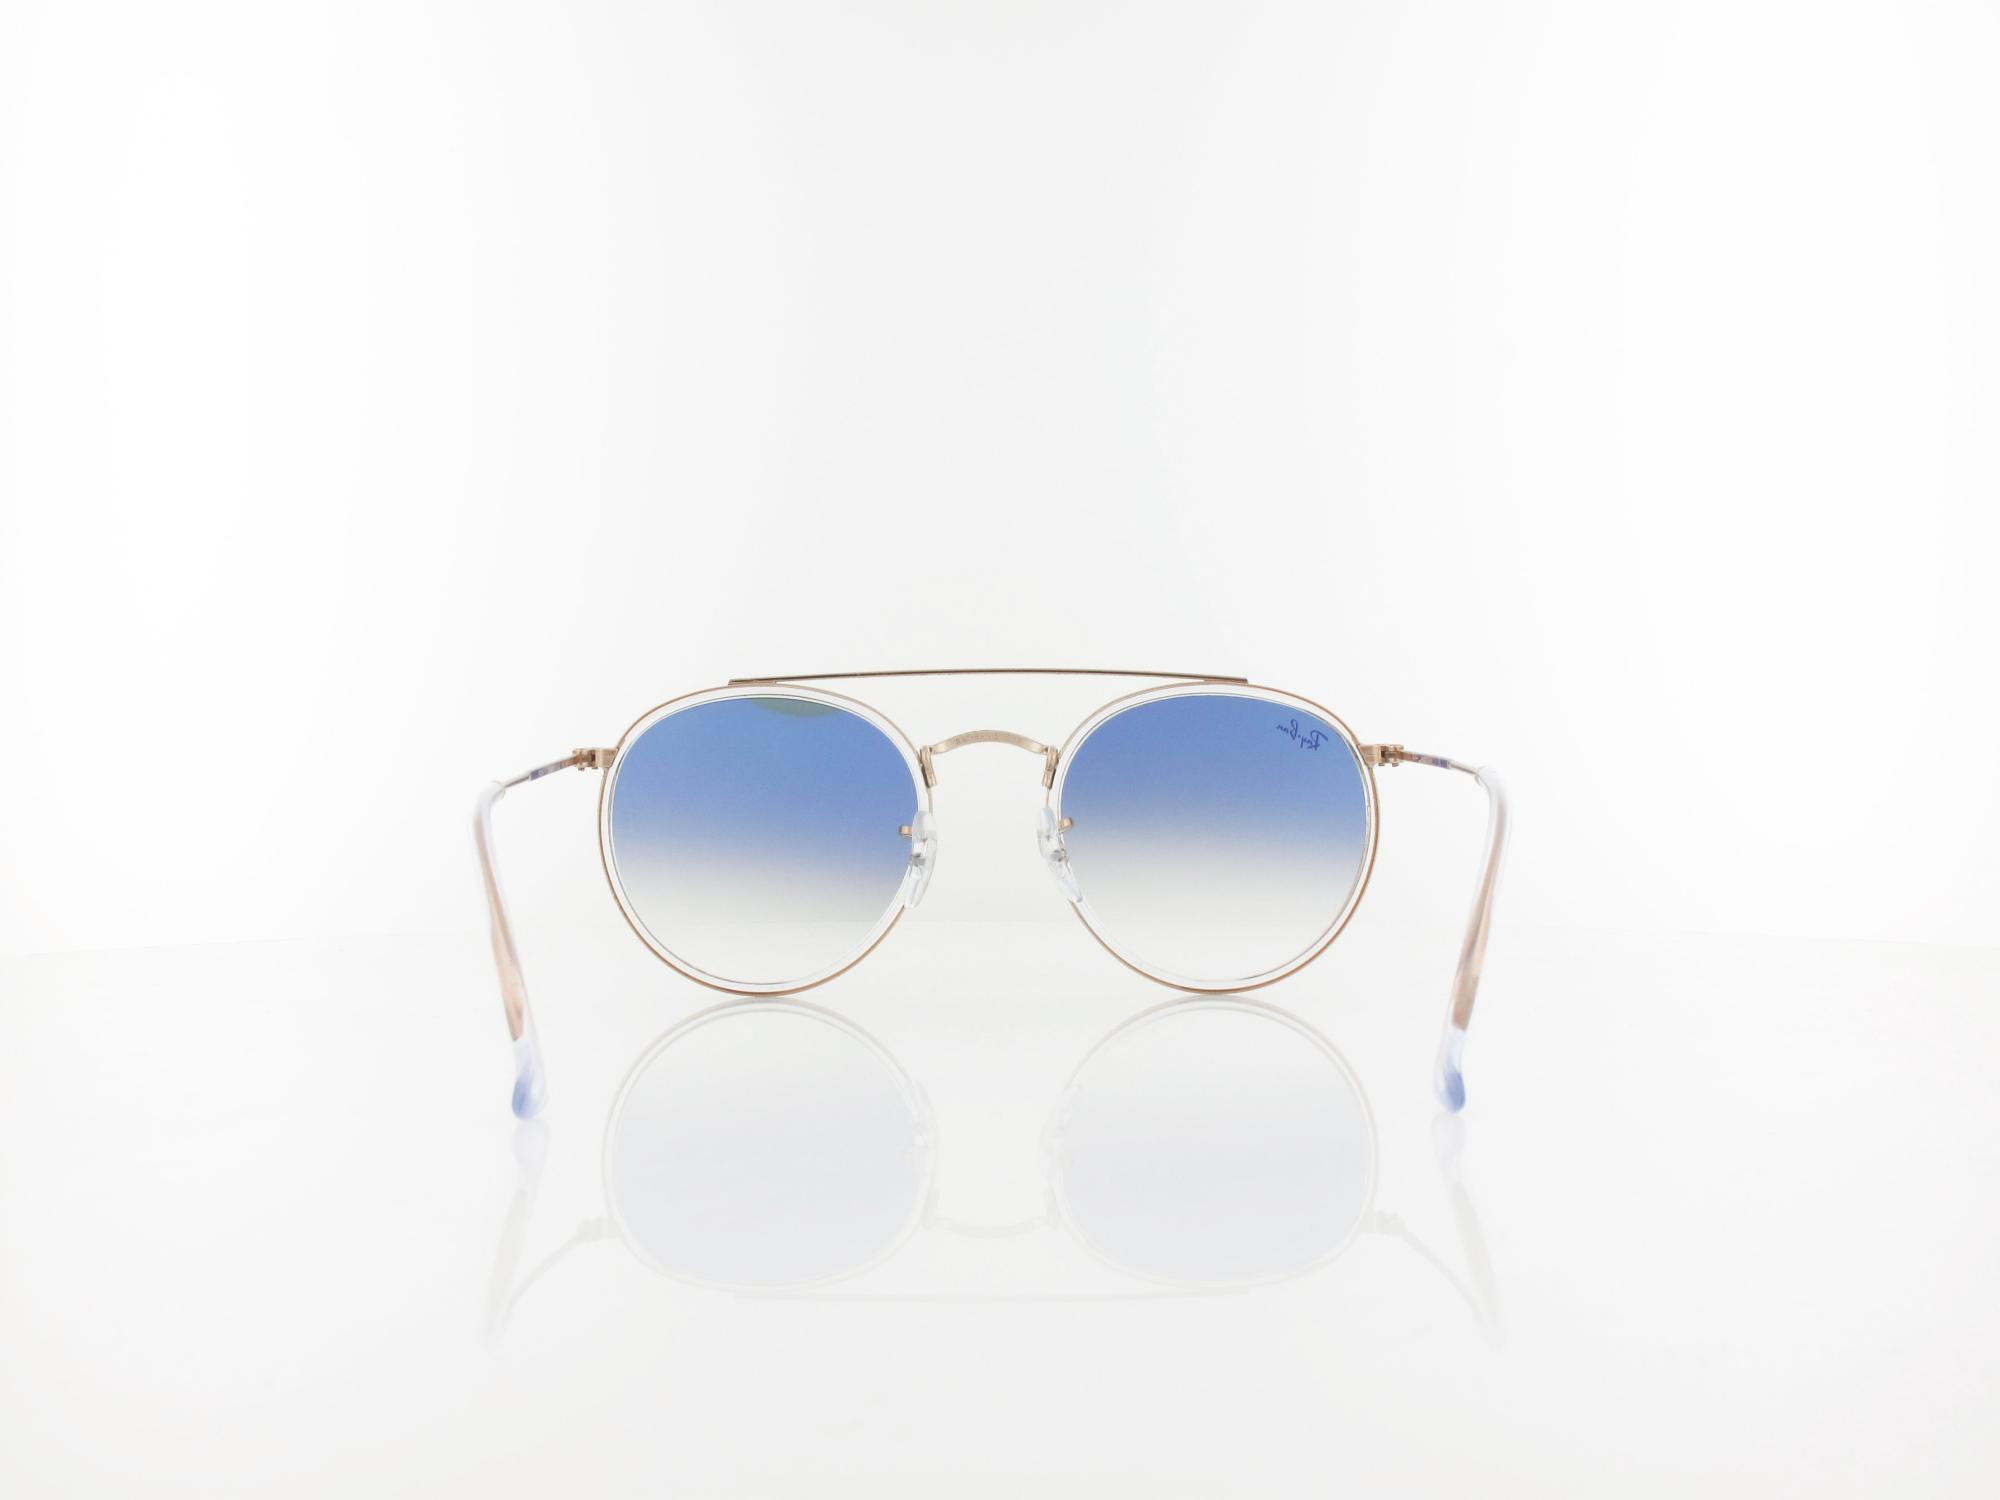 Ray Ban | RB3647N 90683F 51 | copper / clear gradient blue